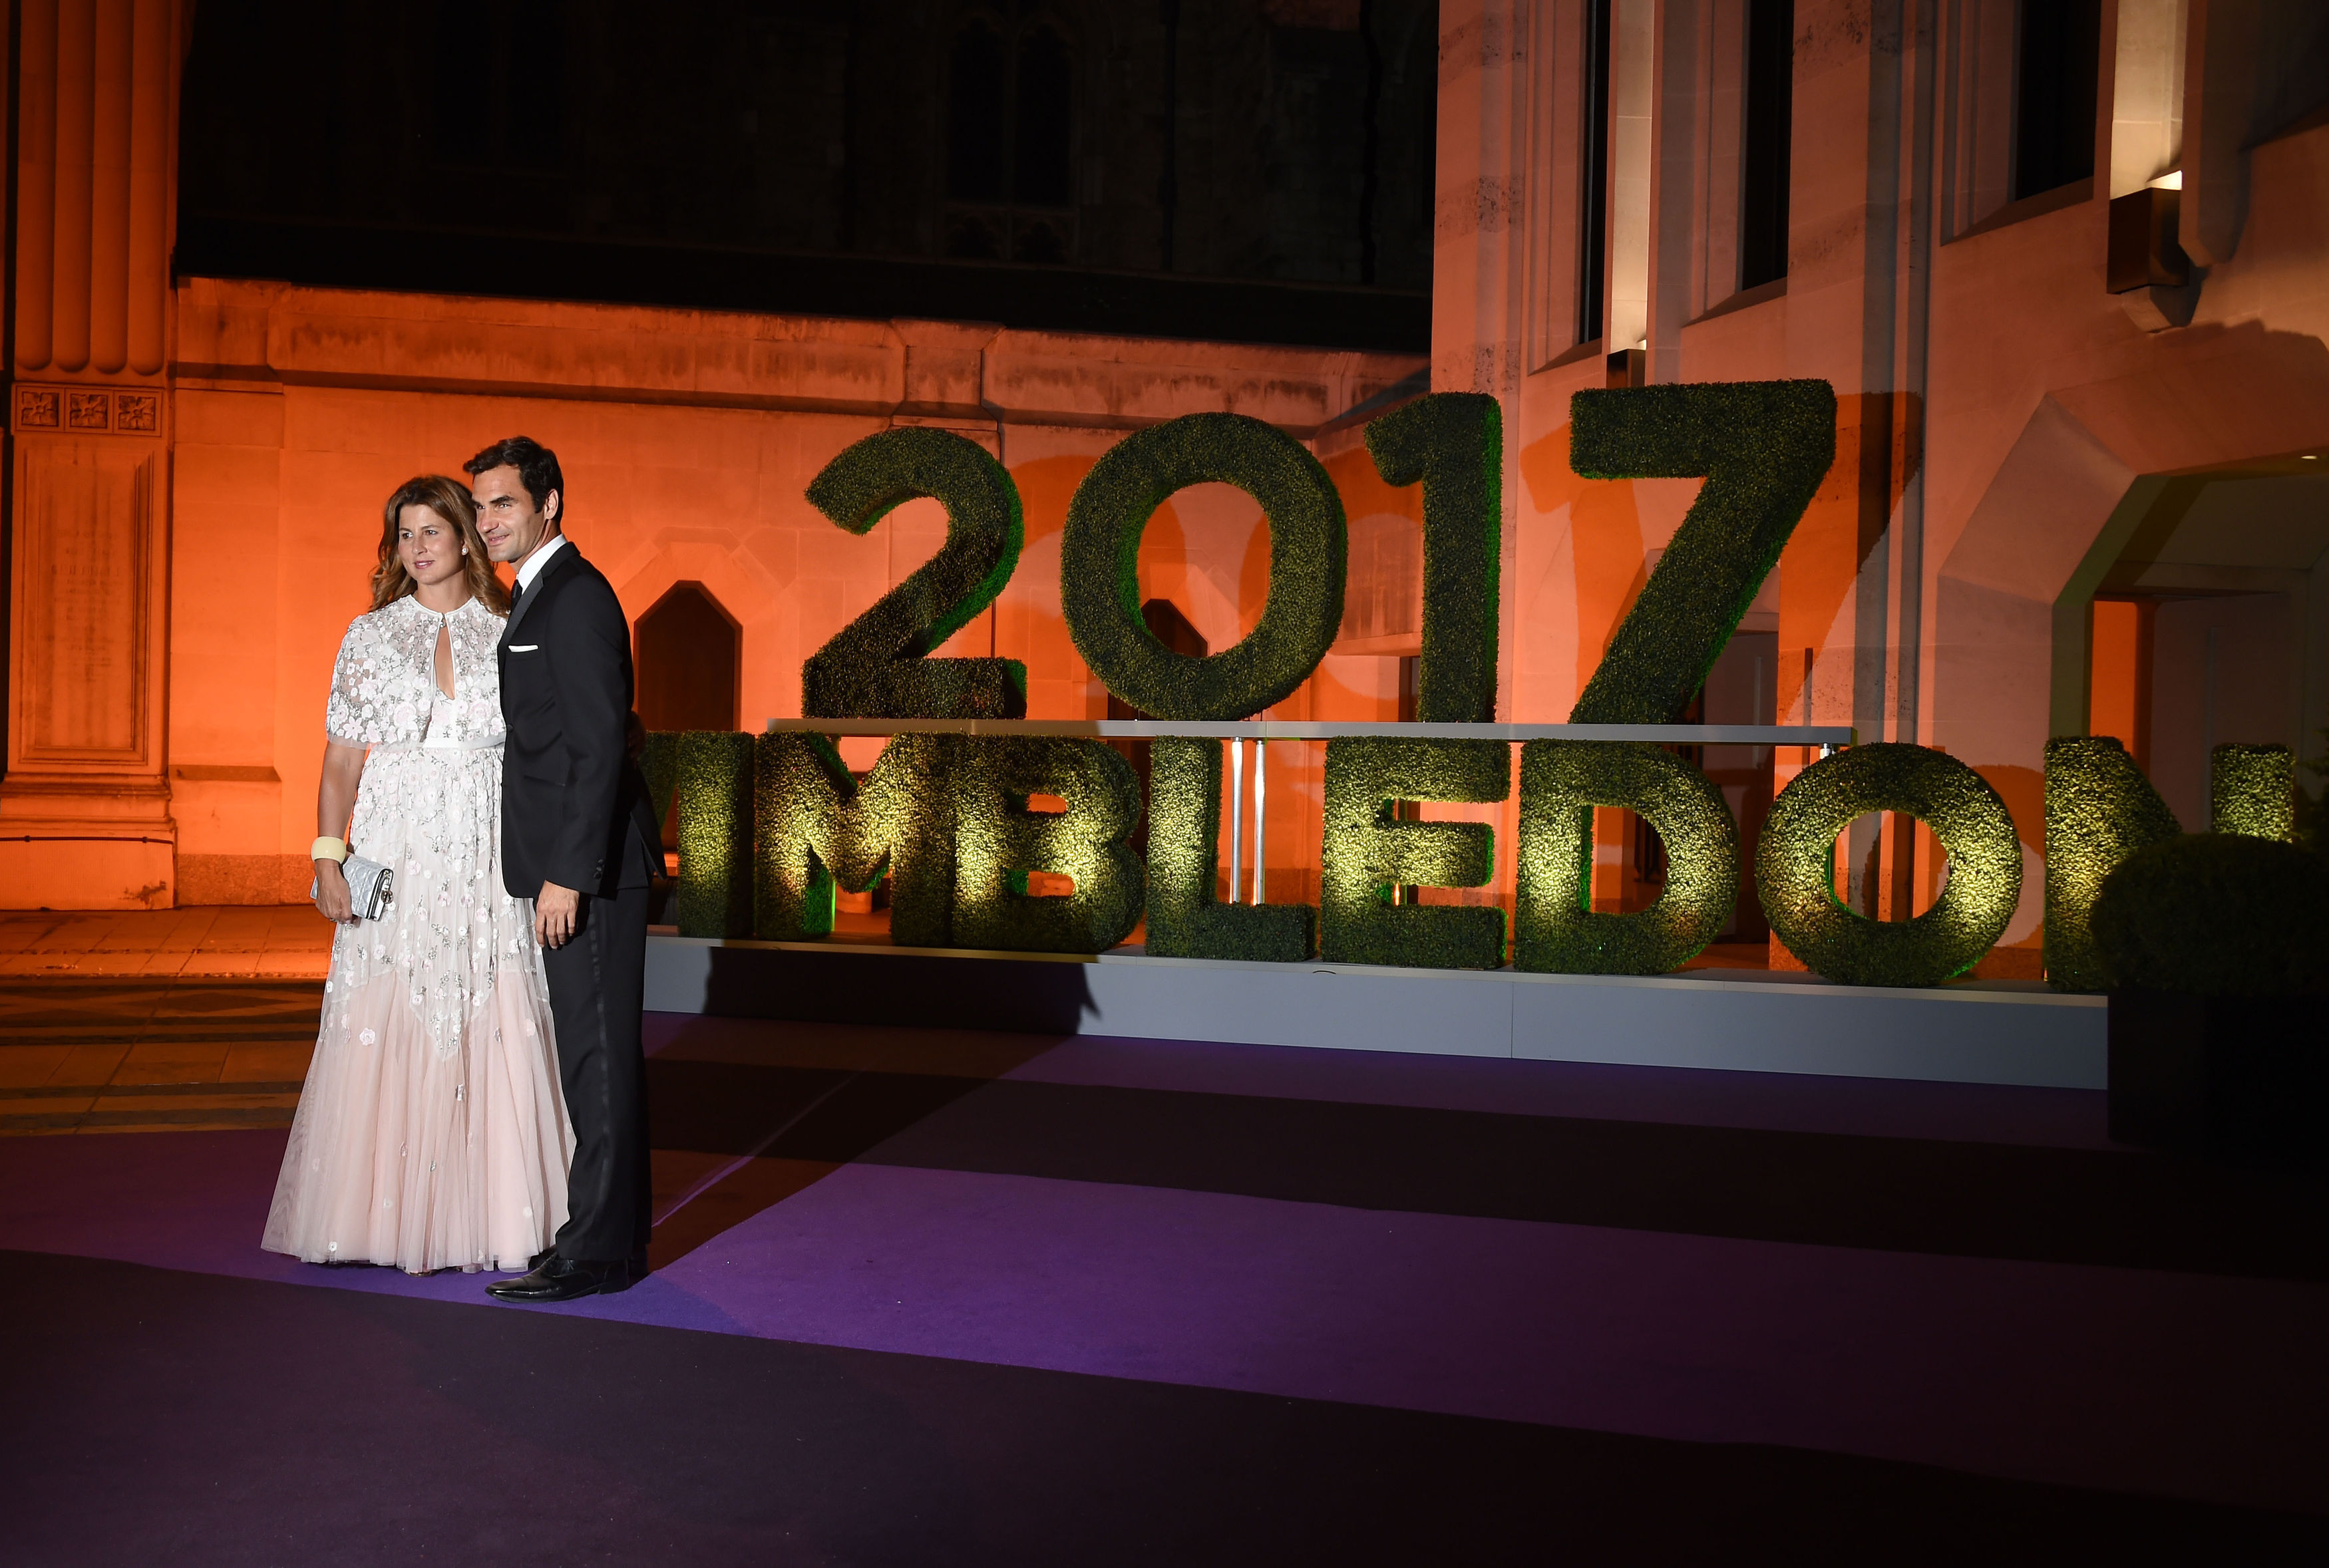 Roger and Mirka Federer arriving at the Wimbledon Champions Dinner 2017, at the Guildhall, London.